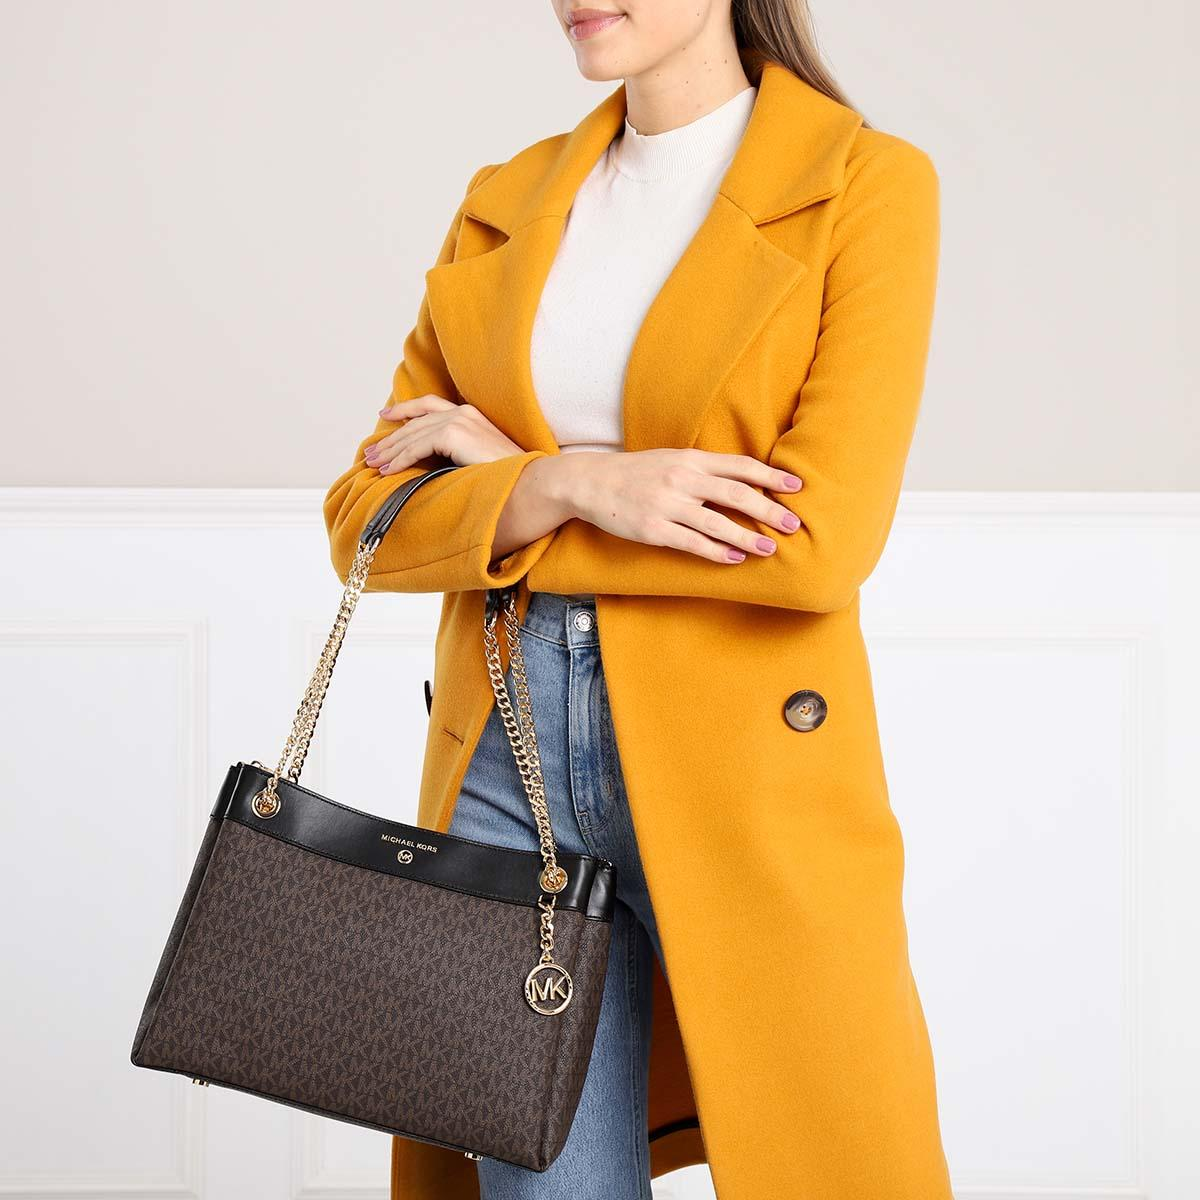 Susan MD Shoulder Brown/Black en Synthétique Michael Kors